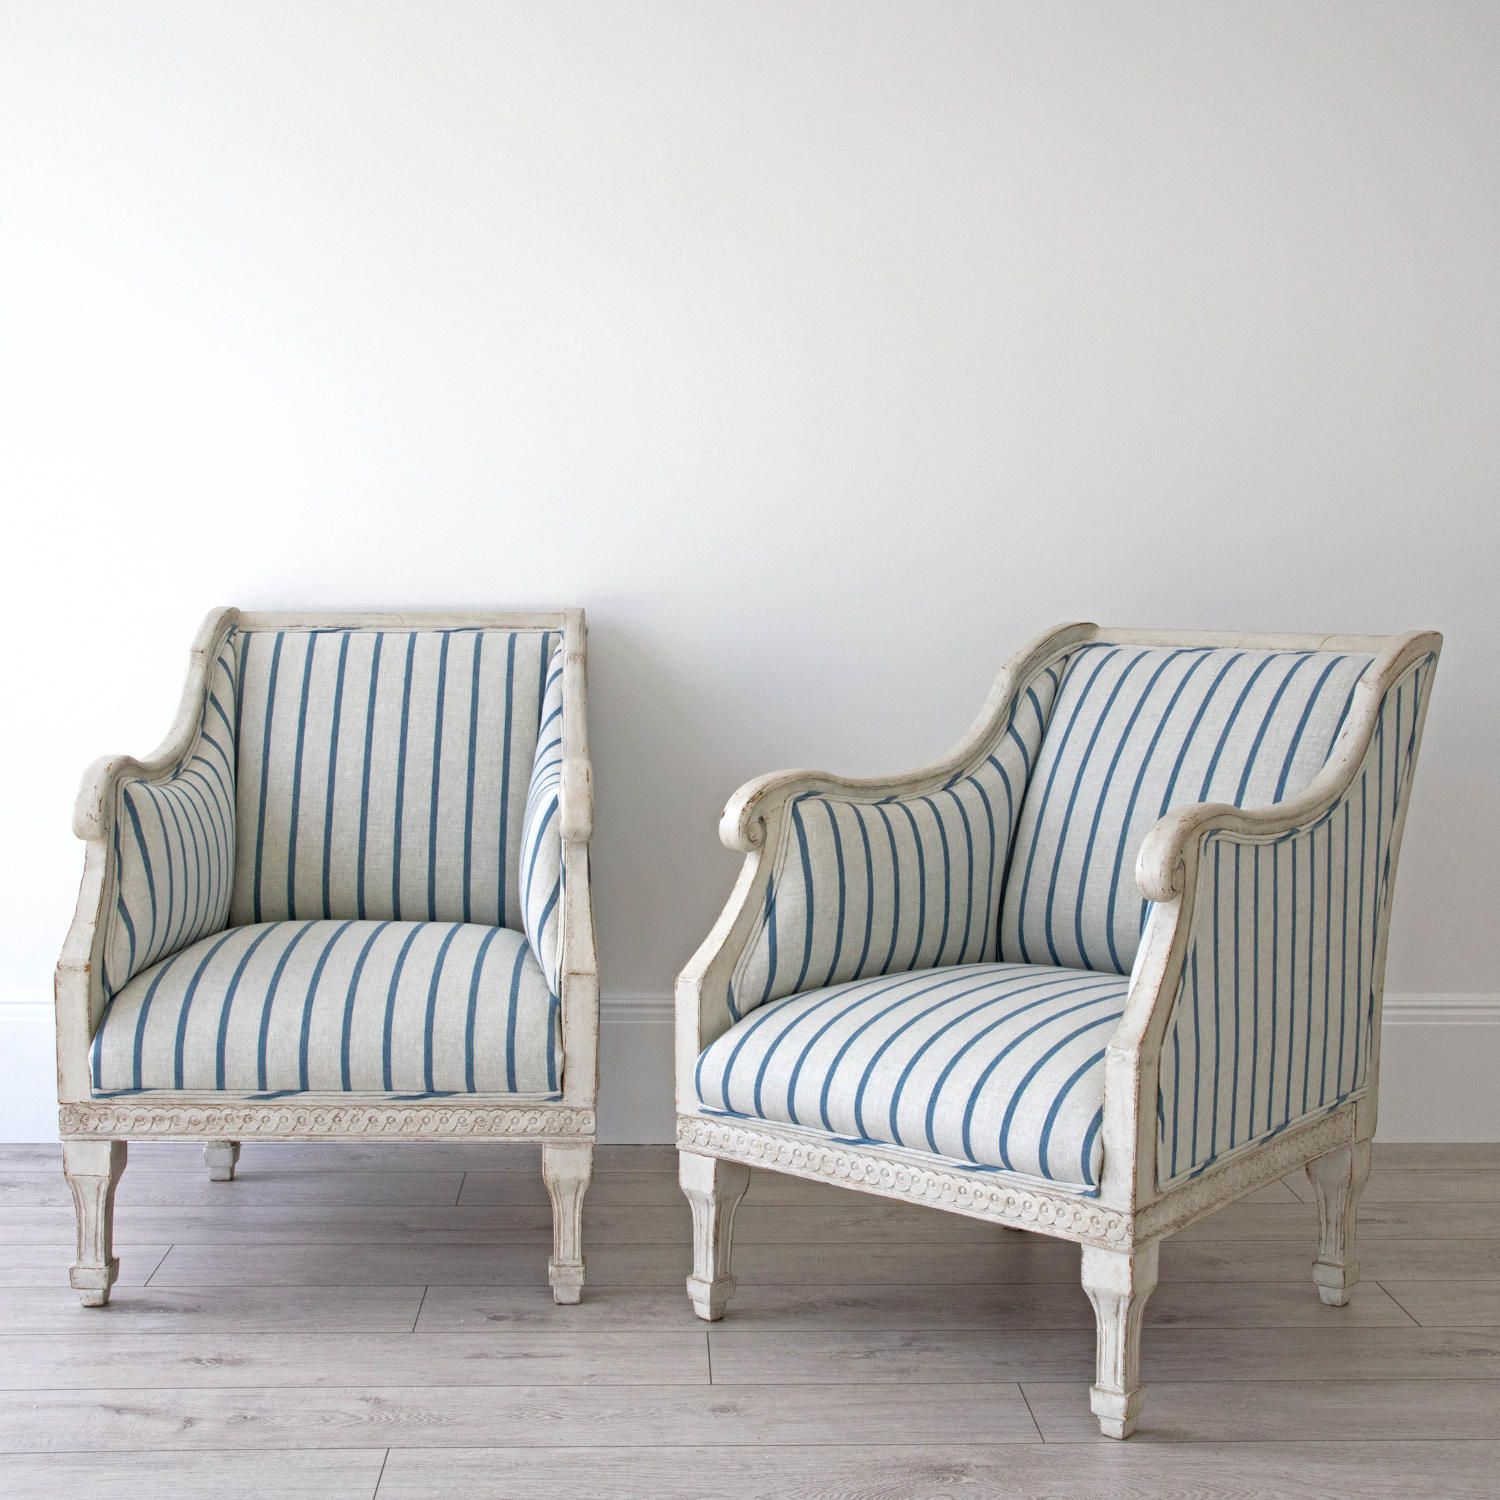 PAIR OF RICHLY CARVED SWEDISH GUSTAVIAN STYLE ARMCHAIRS